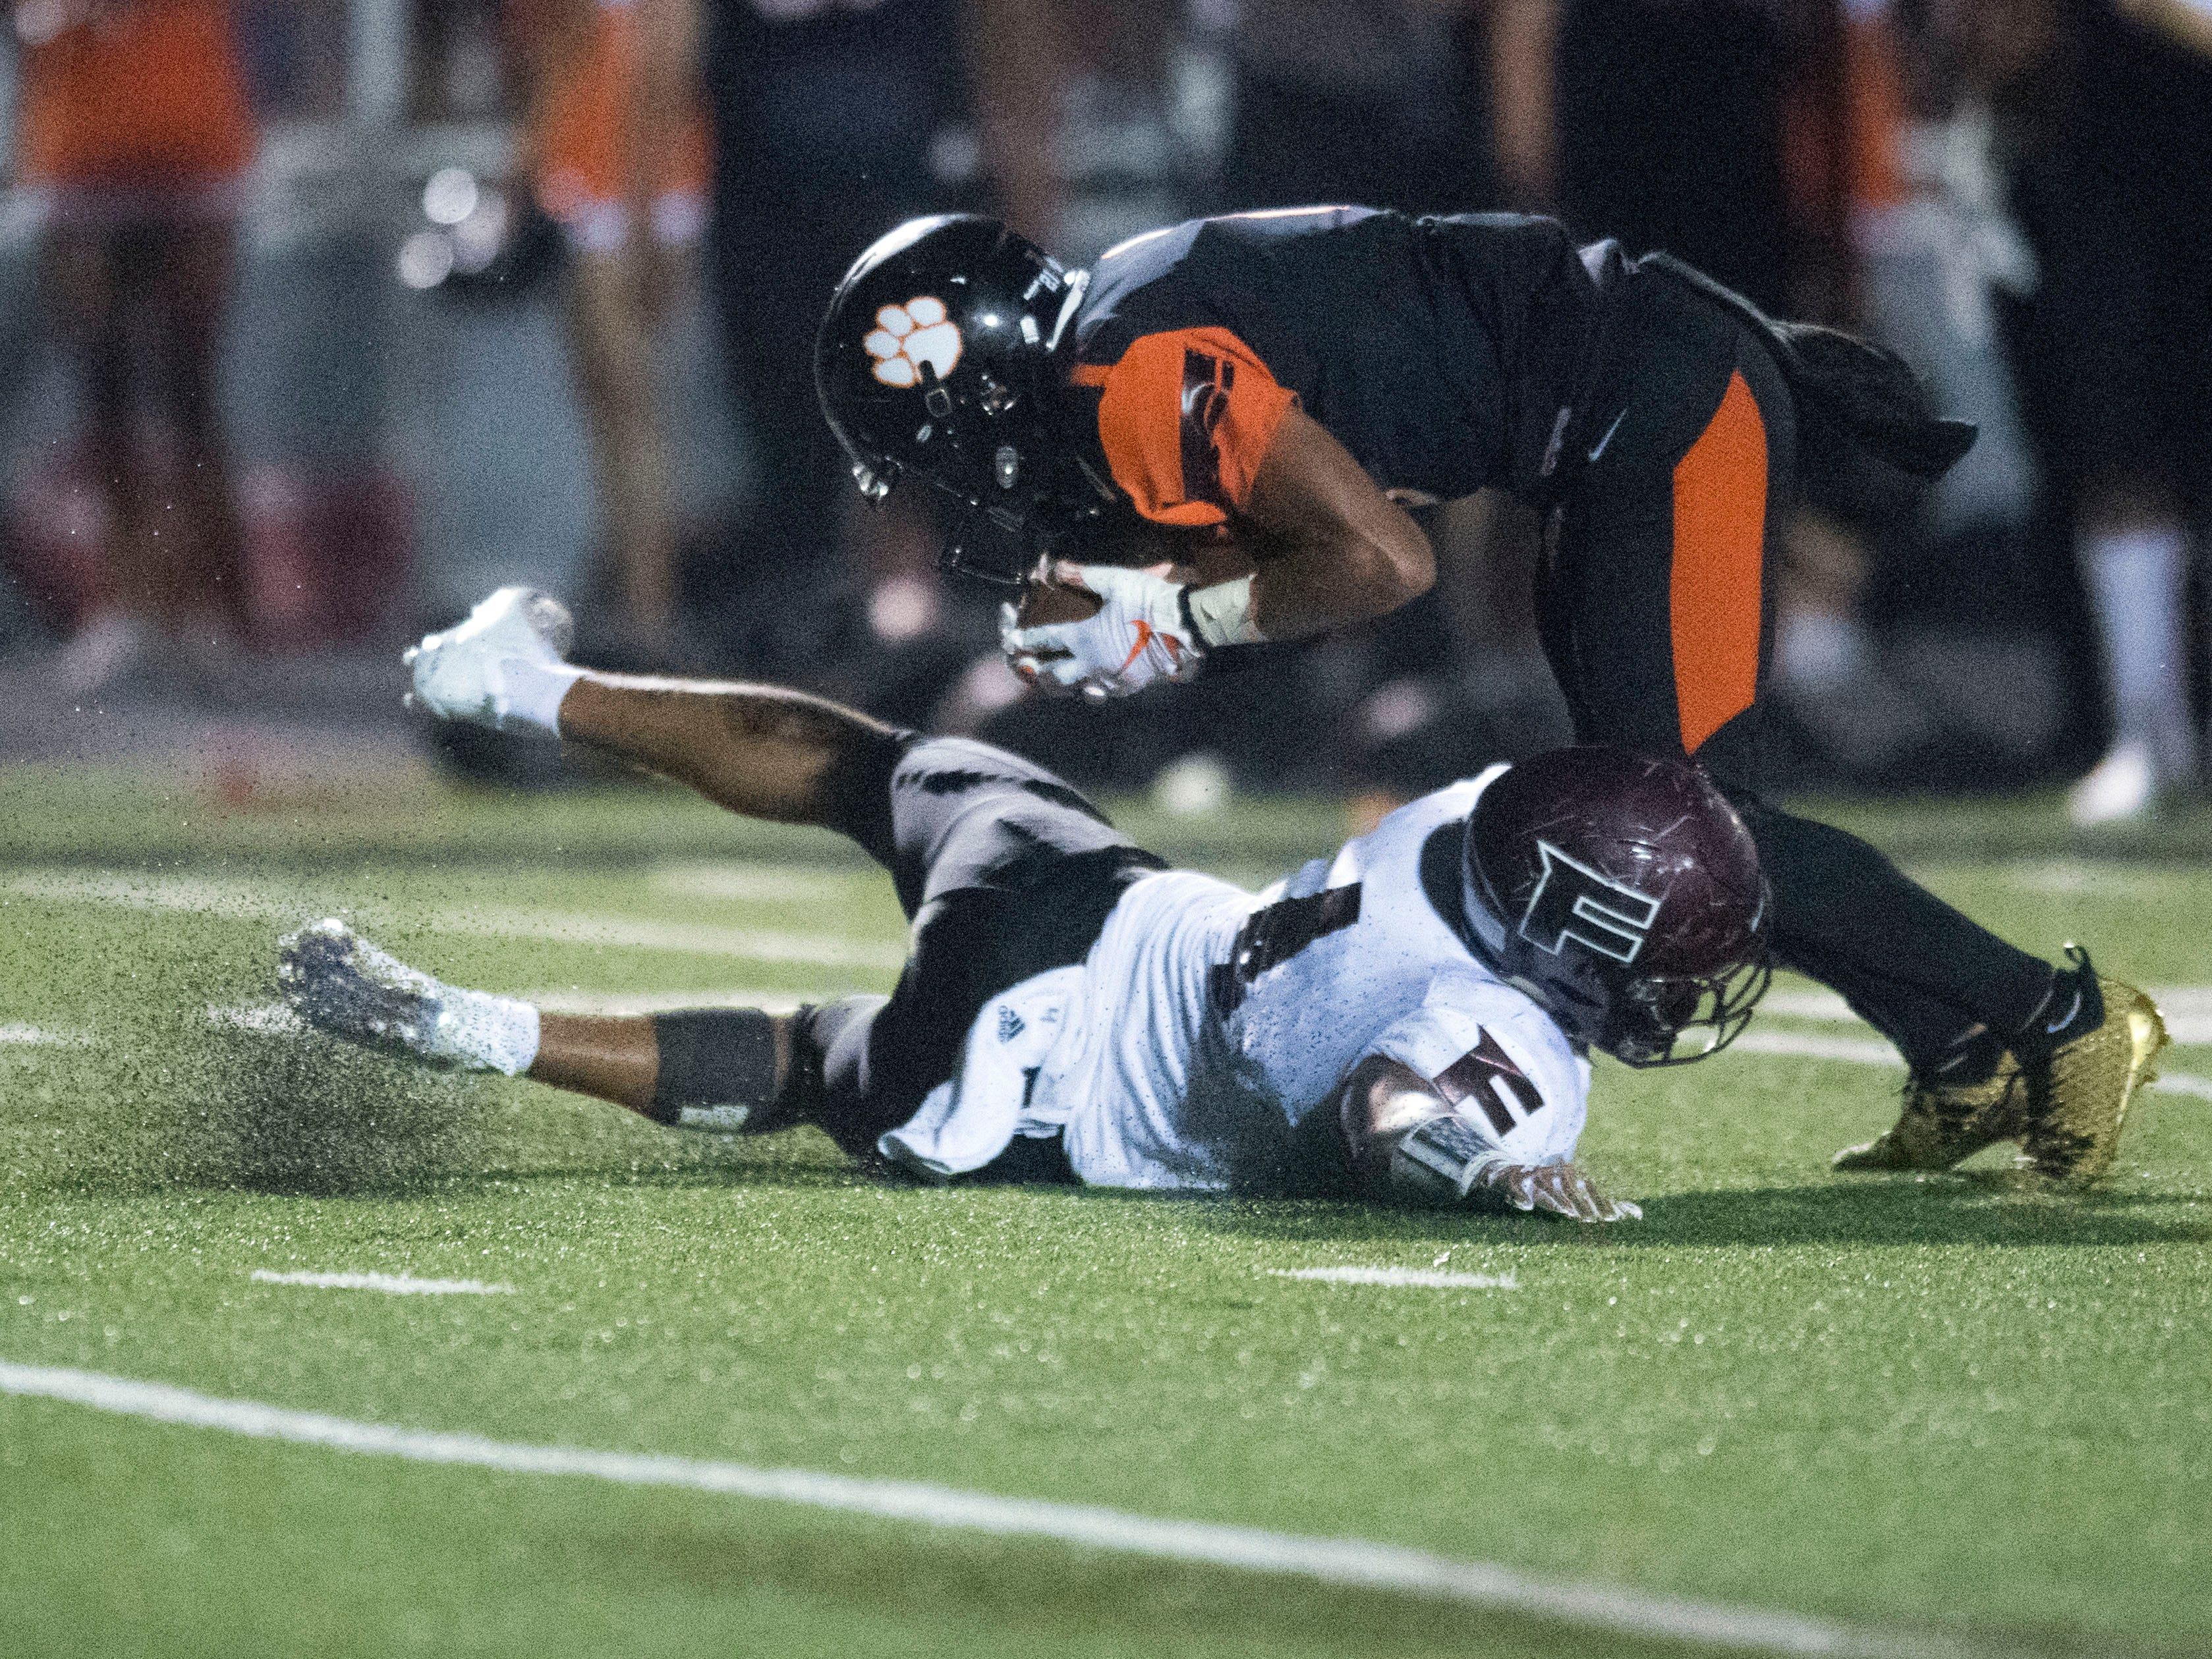 Powell's Riley Bryant (6) is hit by Fulton's Robquan Thomas (4) during the football game at Powell on Friday, August 31, 2018.